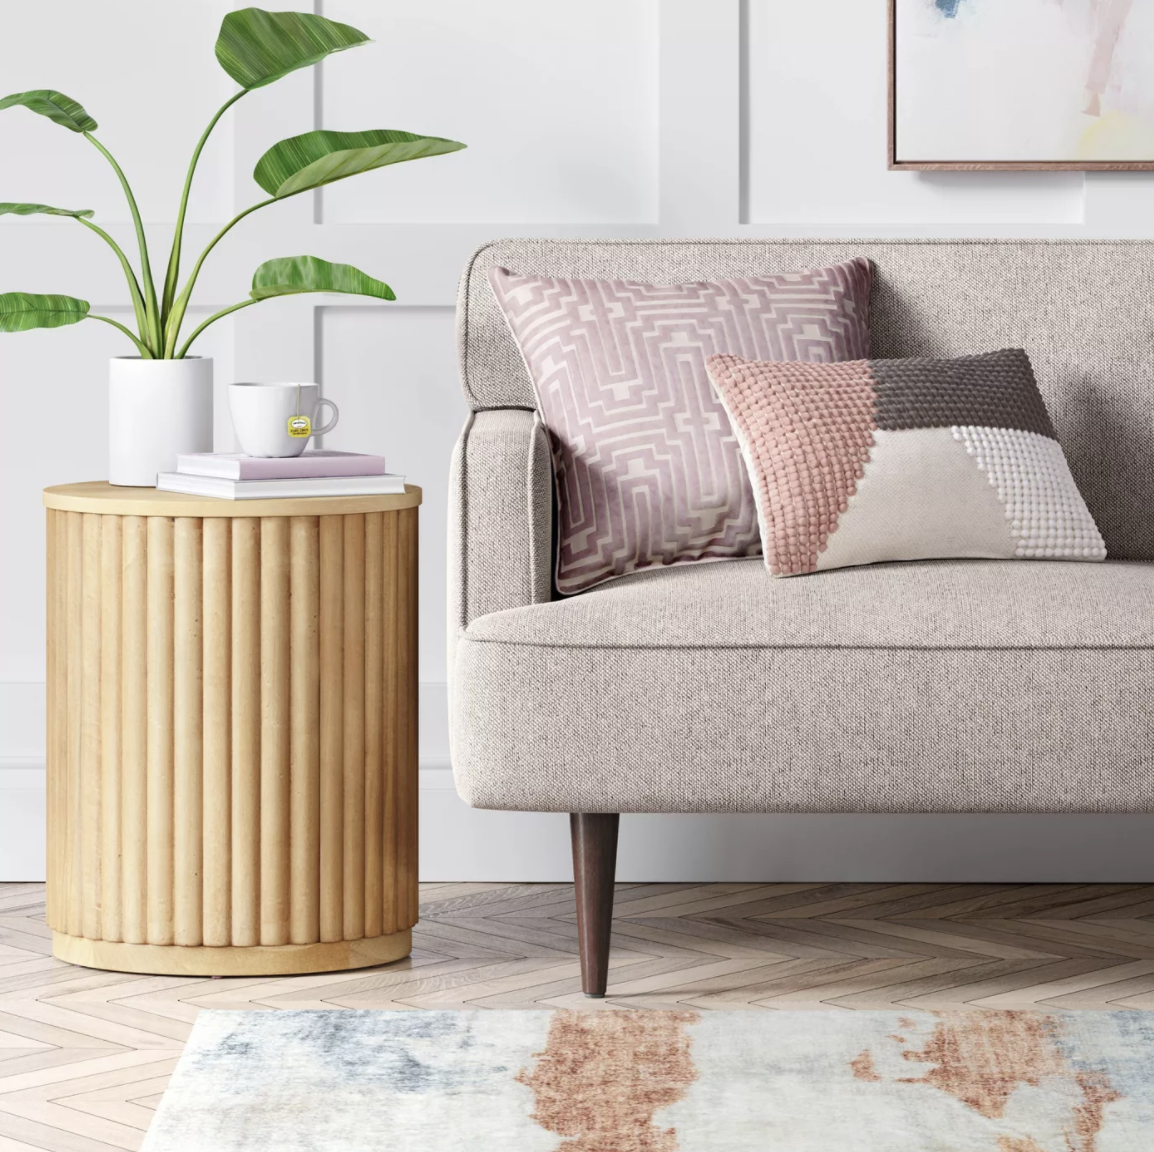 the fluted light wood end table